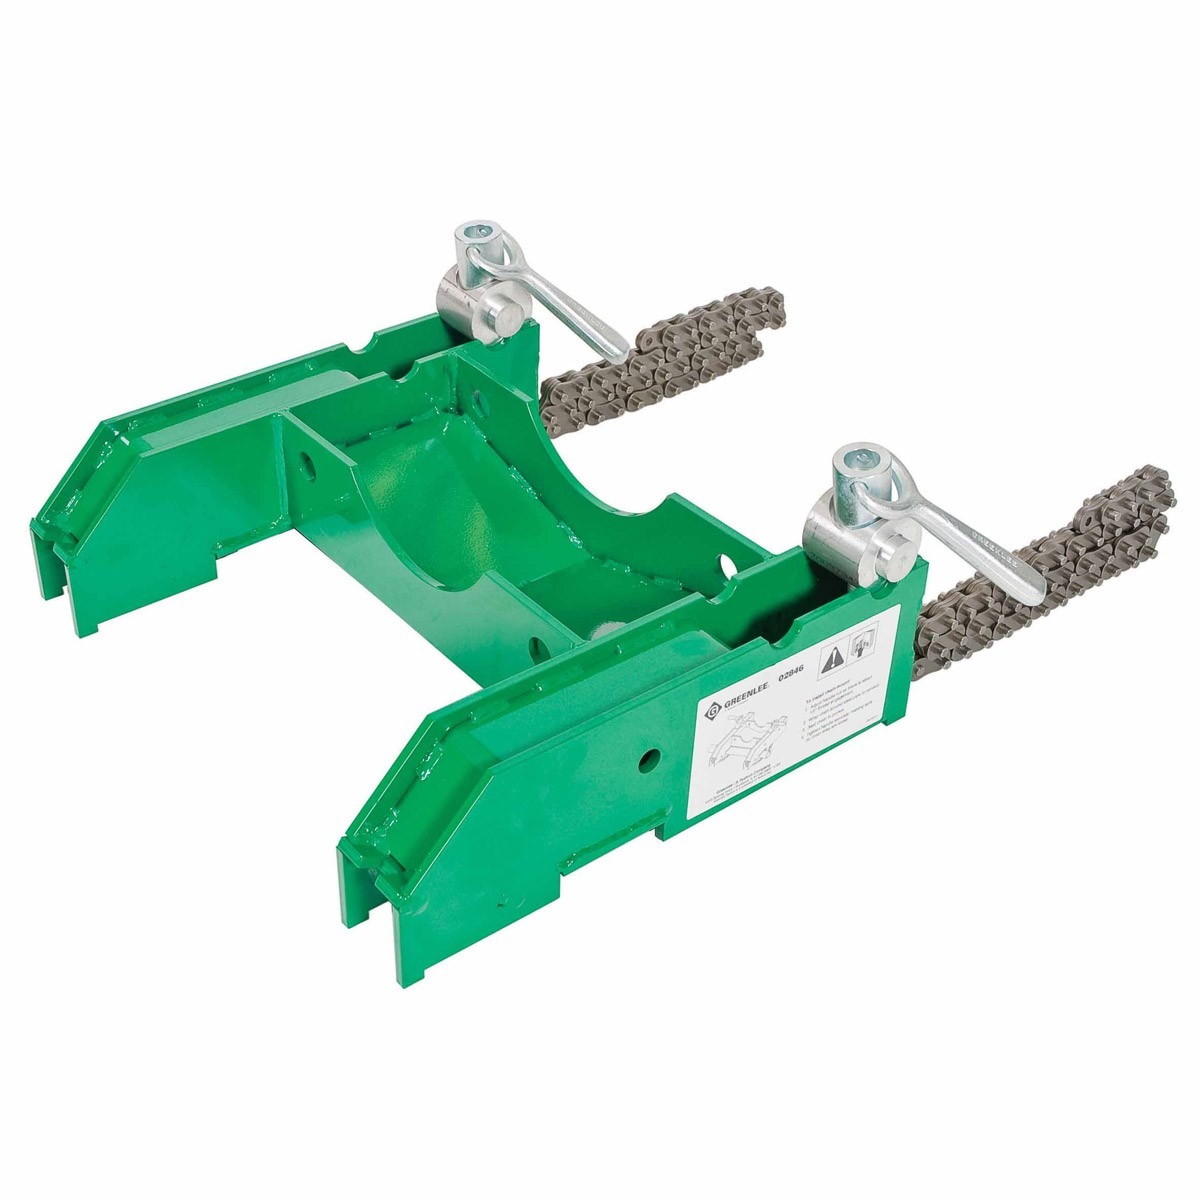 100+ Greenlee Tugger Cable Puller - Master 8000 Cable Tugger Wire ...